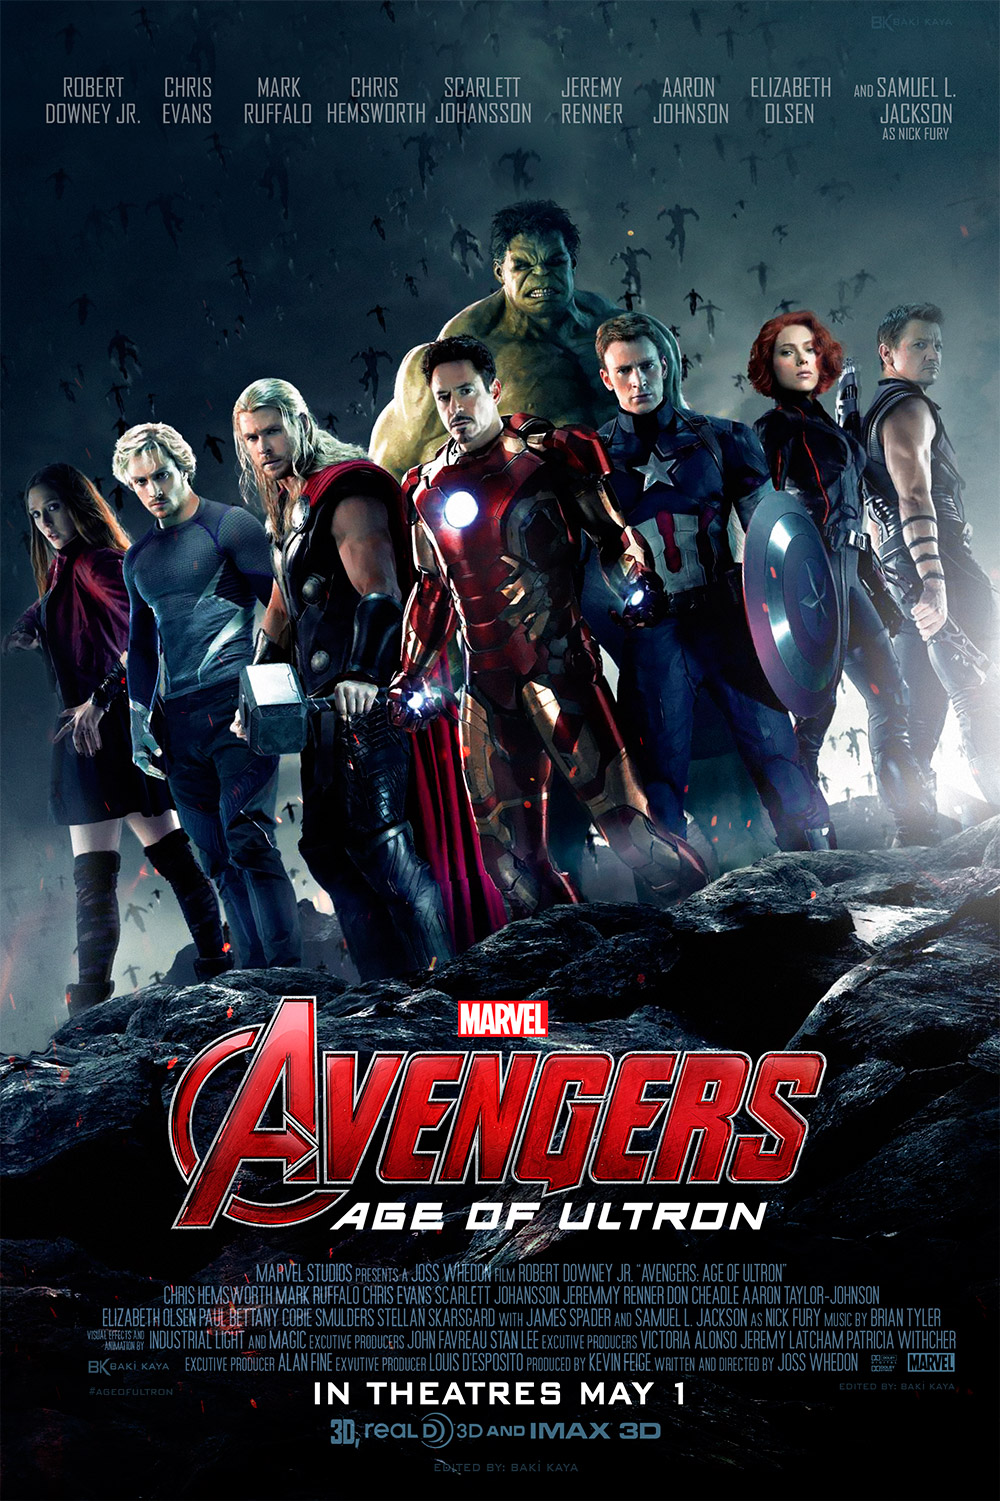 Download Film Avengers Age Of Ultron Bluray : download, avengers, ultron, bluray, WatchTime:, Avengers, Ultron, Bluray, Download